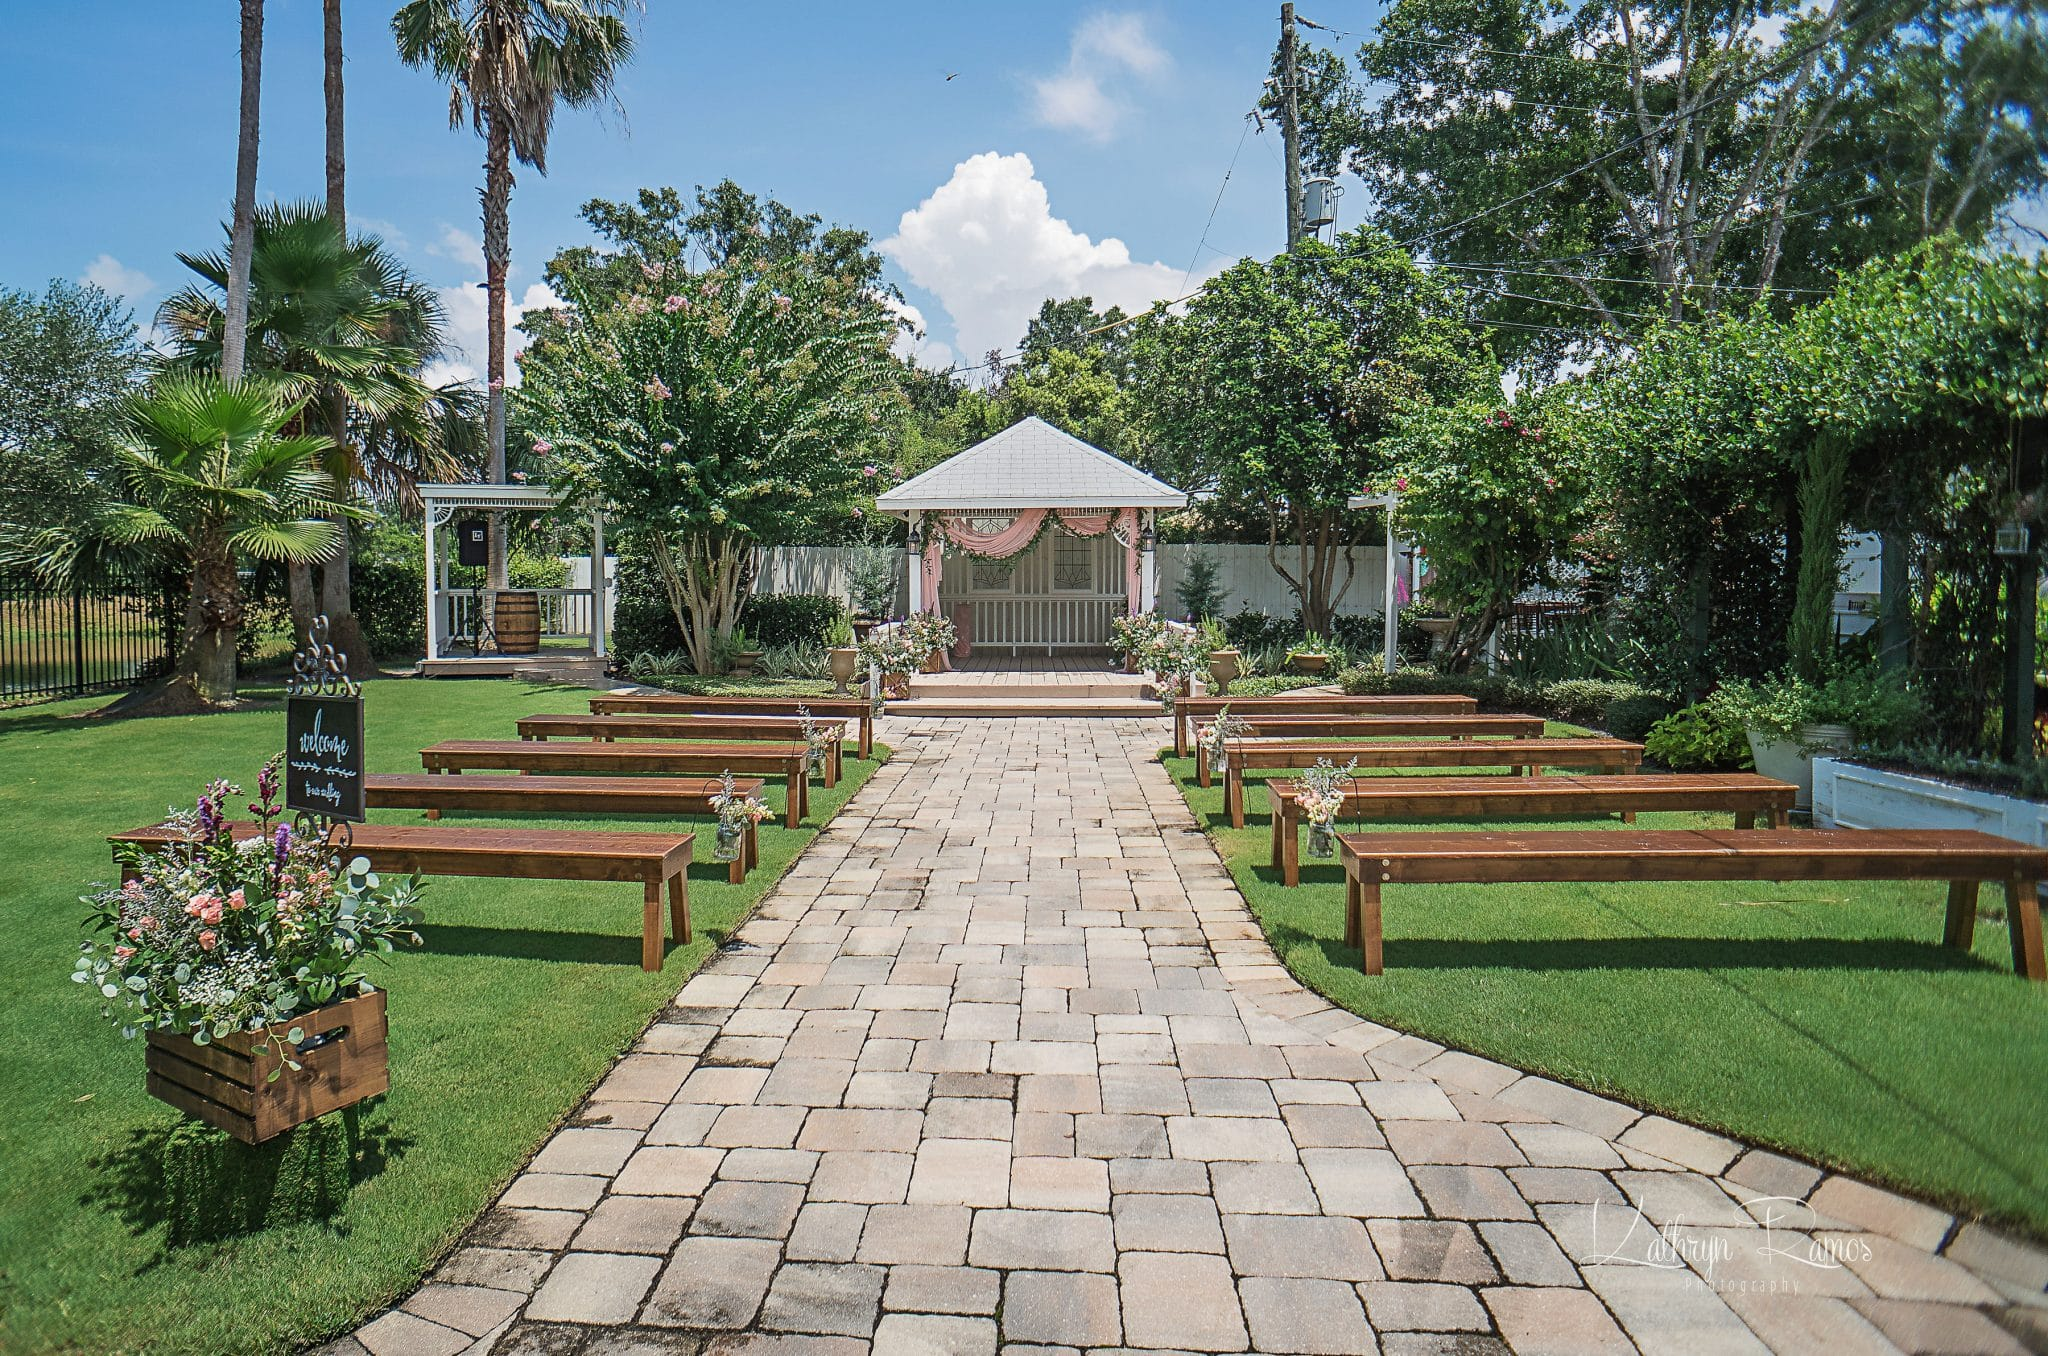 outside ceremony space with benches and brick path